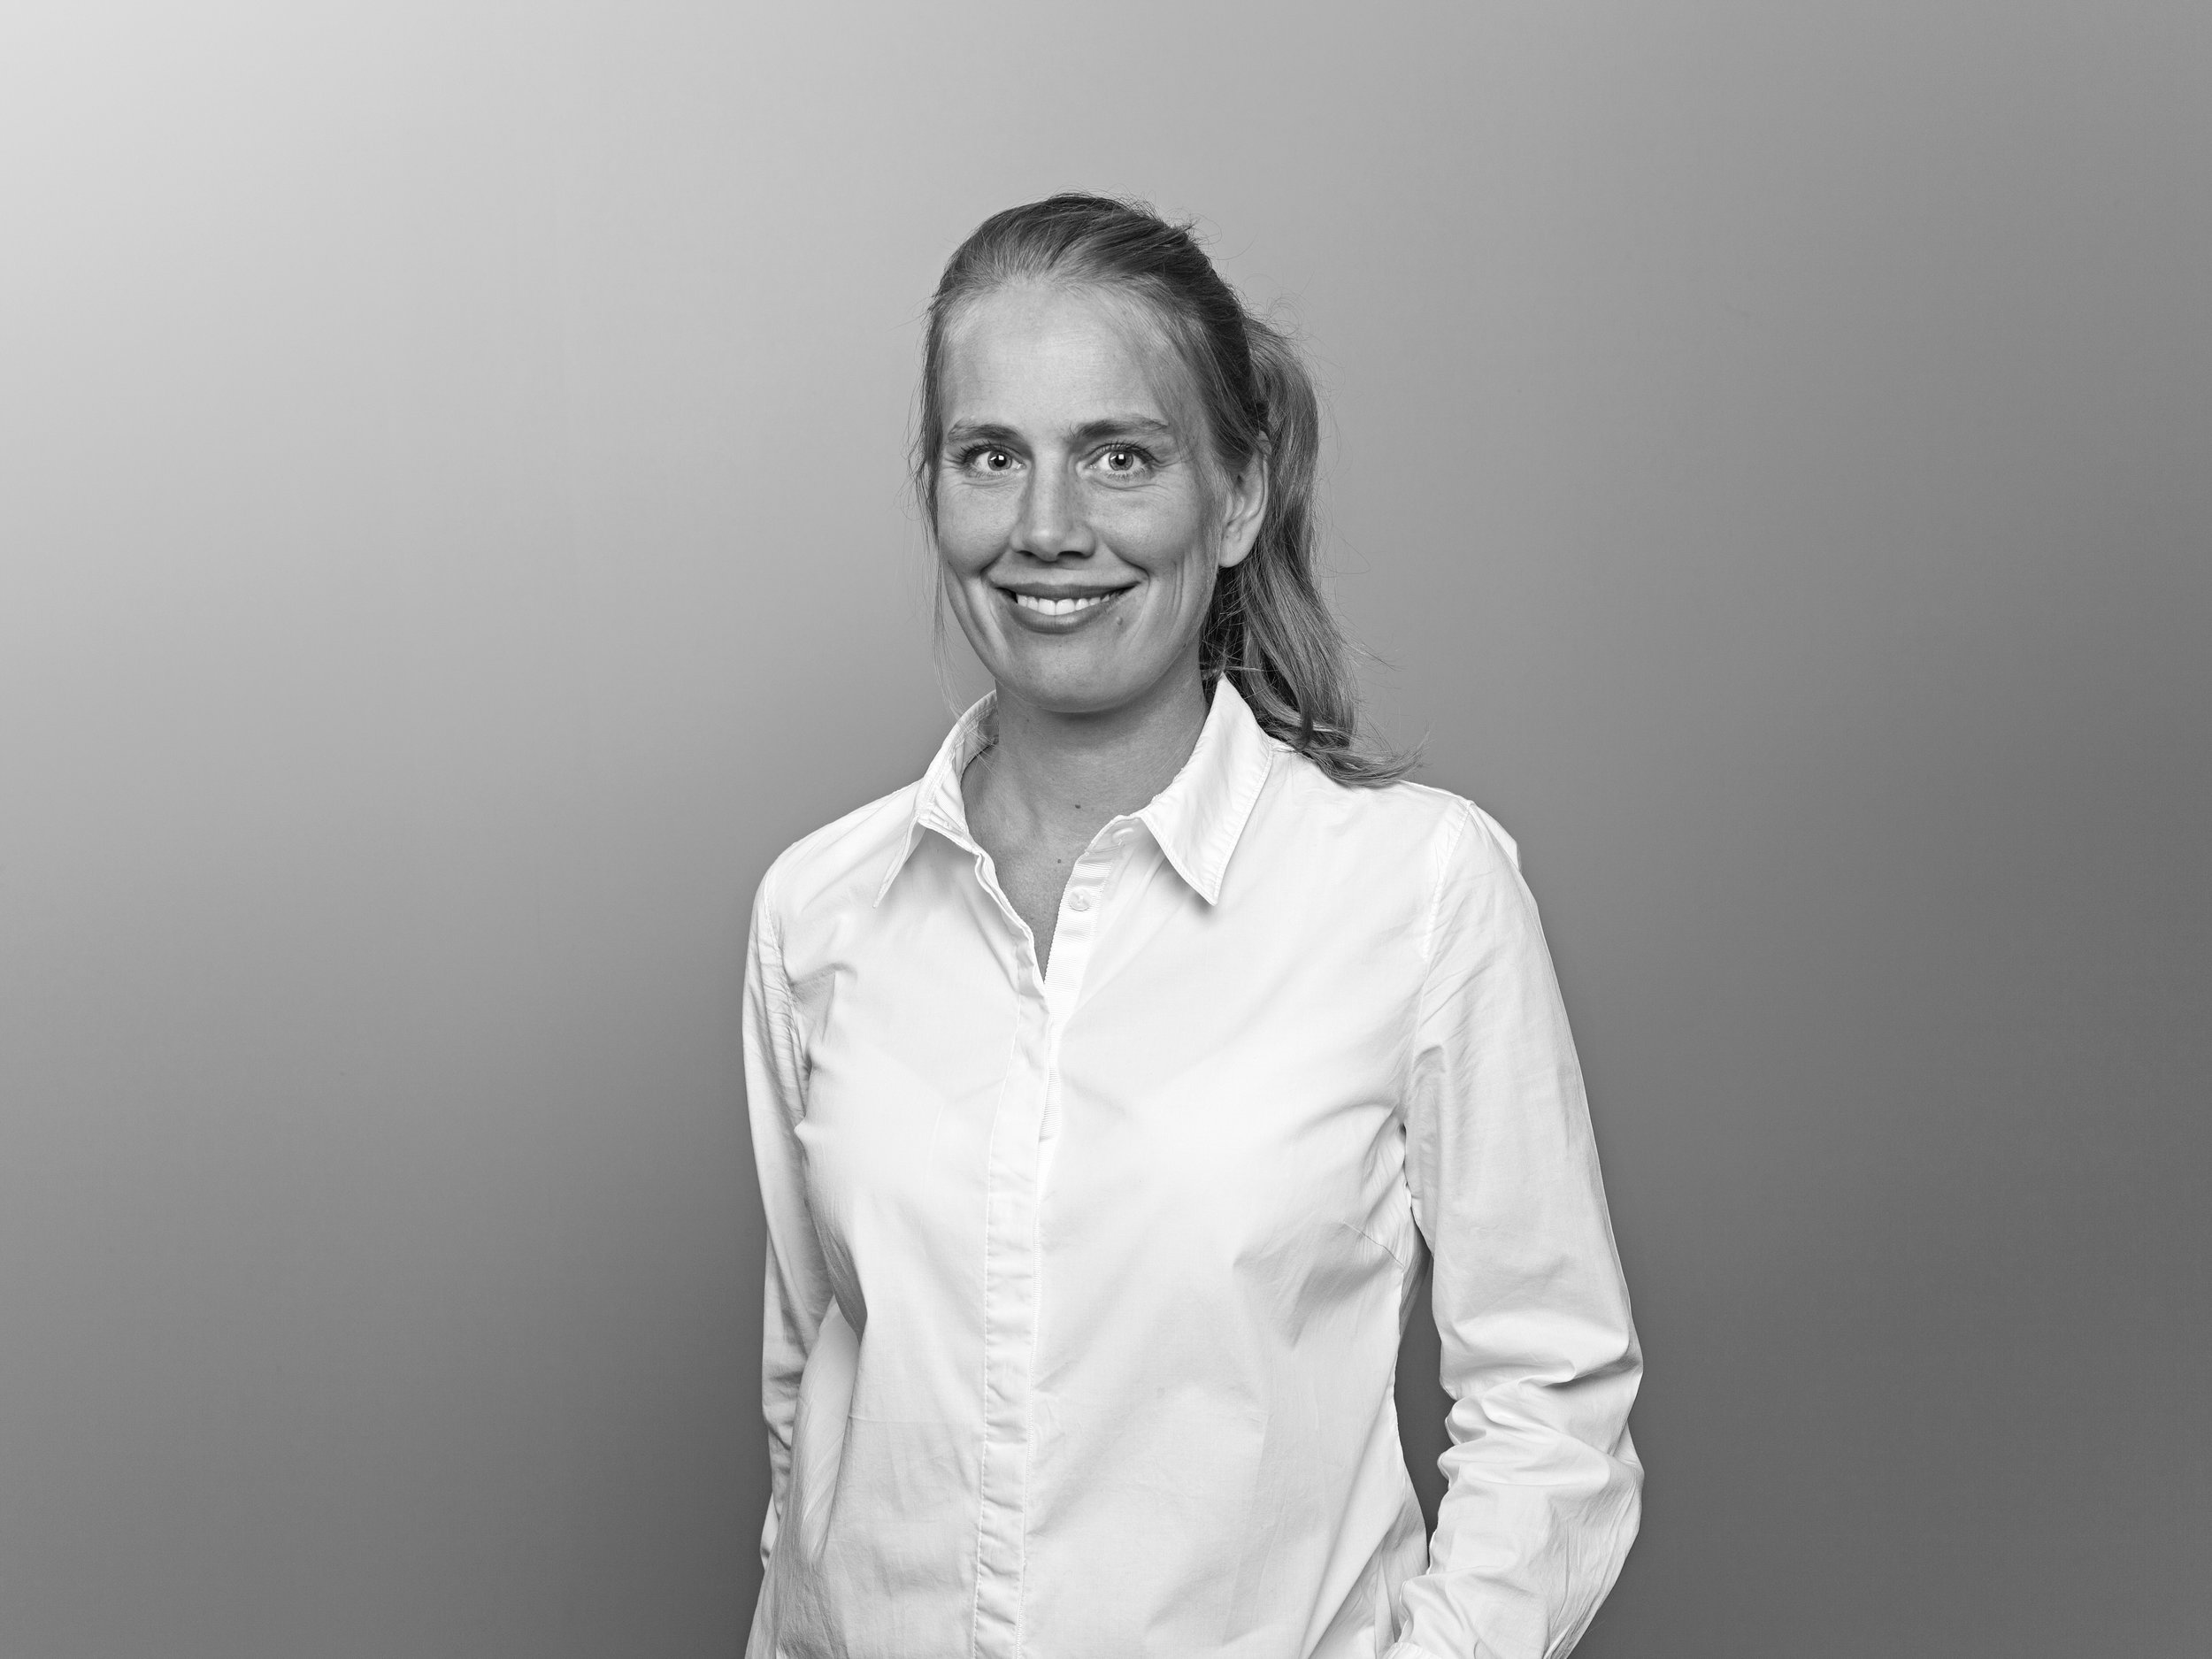 Ingrid Wingård.  Architect and furniture designer, educated in Lund and Chalmers School of Architecture (Sweden). Ingrid is strong in conceptual aspects and has a great material sense. Her interest in old modernist furniture often contributes to the contemporary work of the studio.